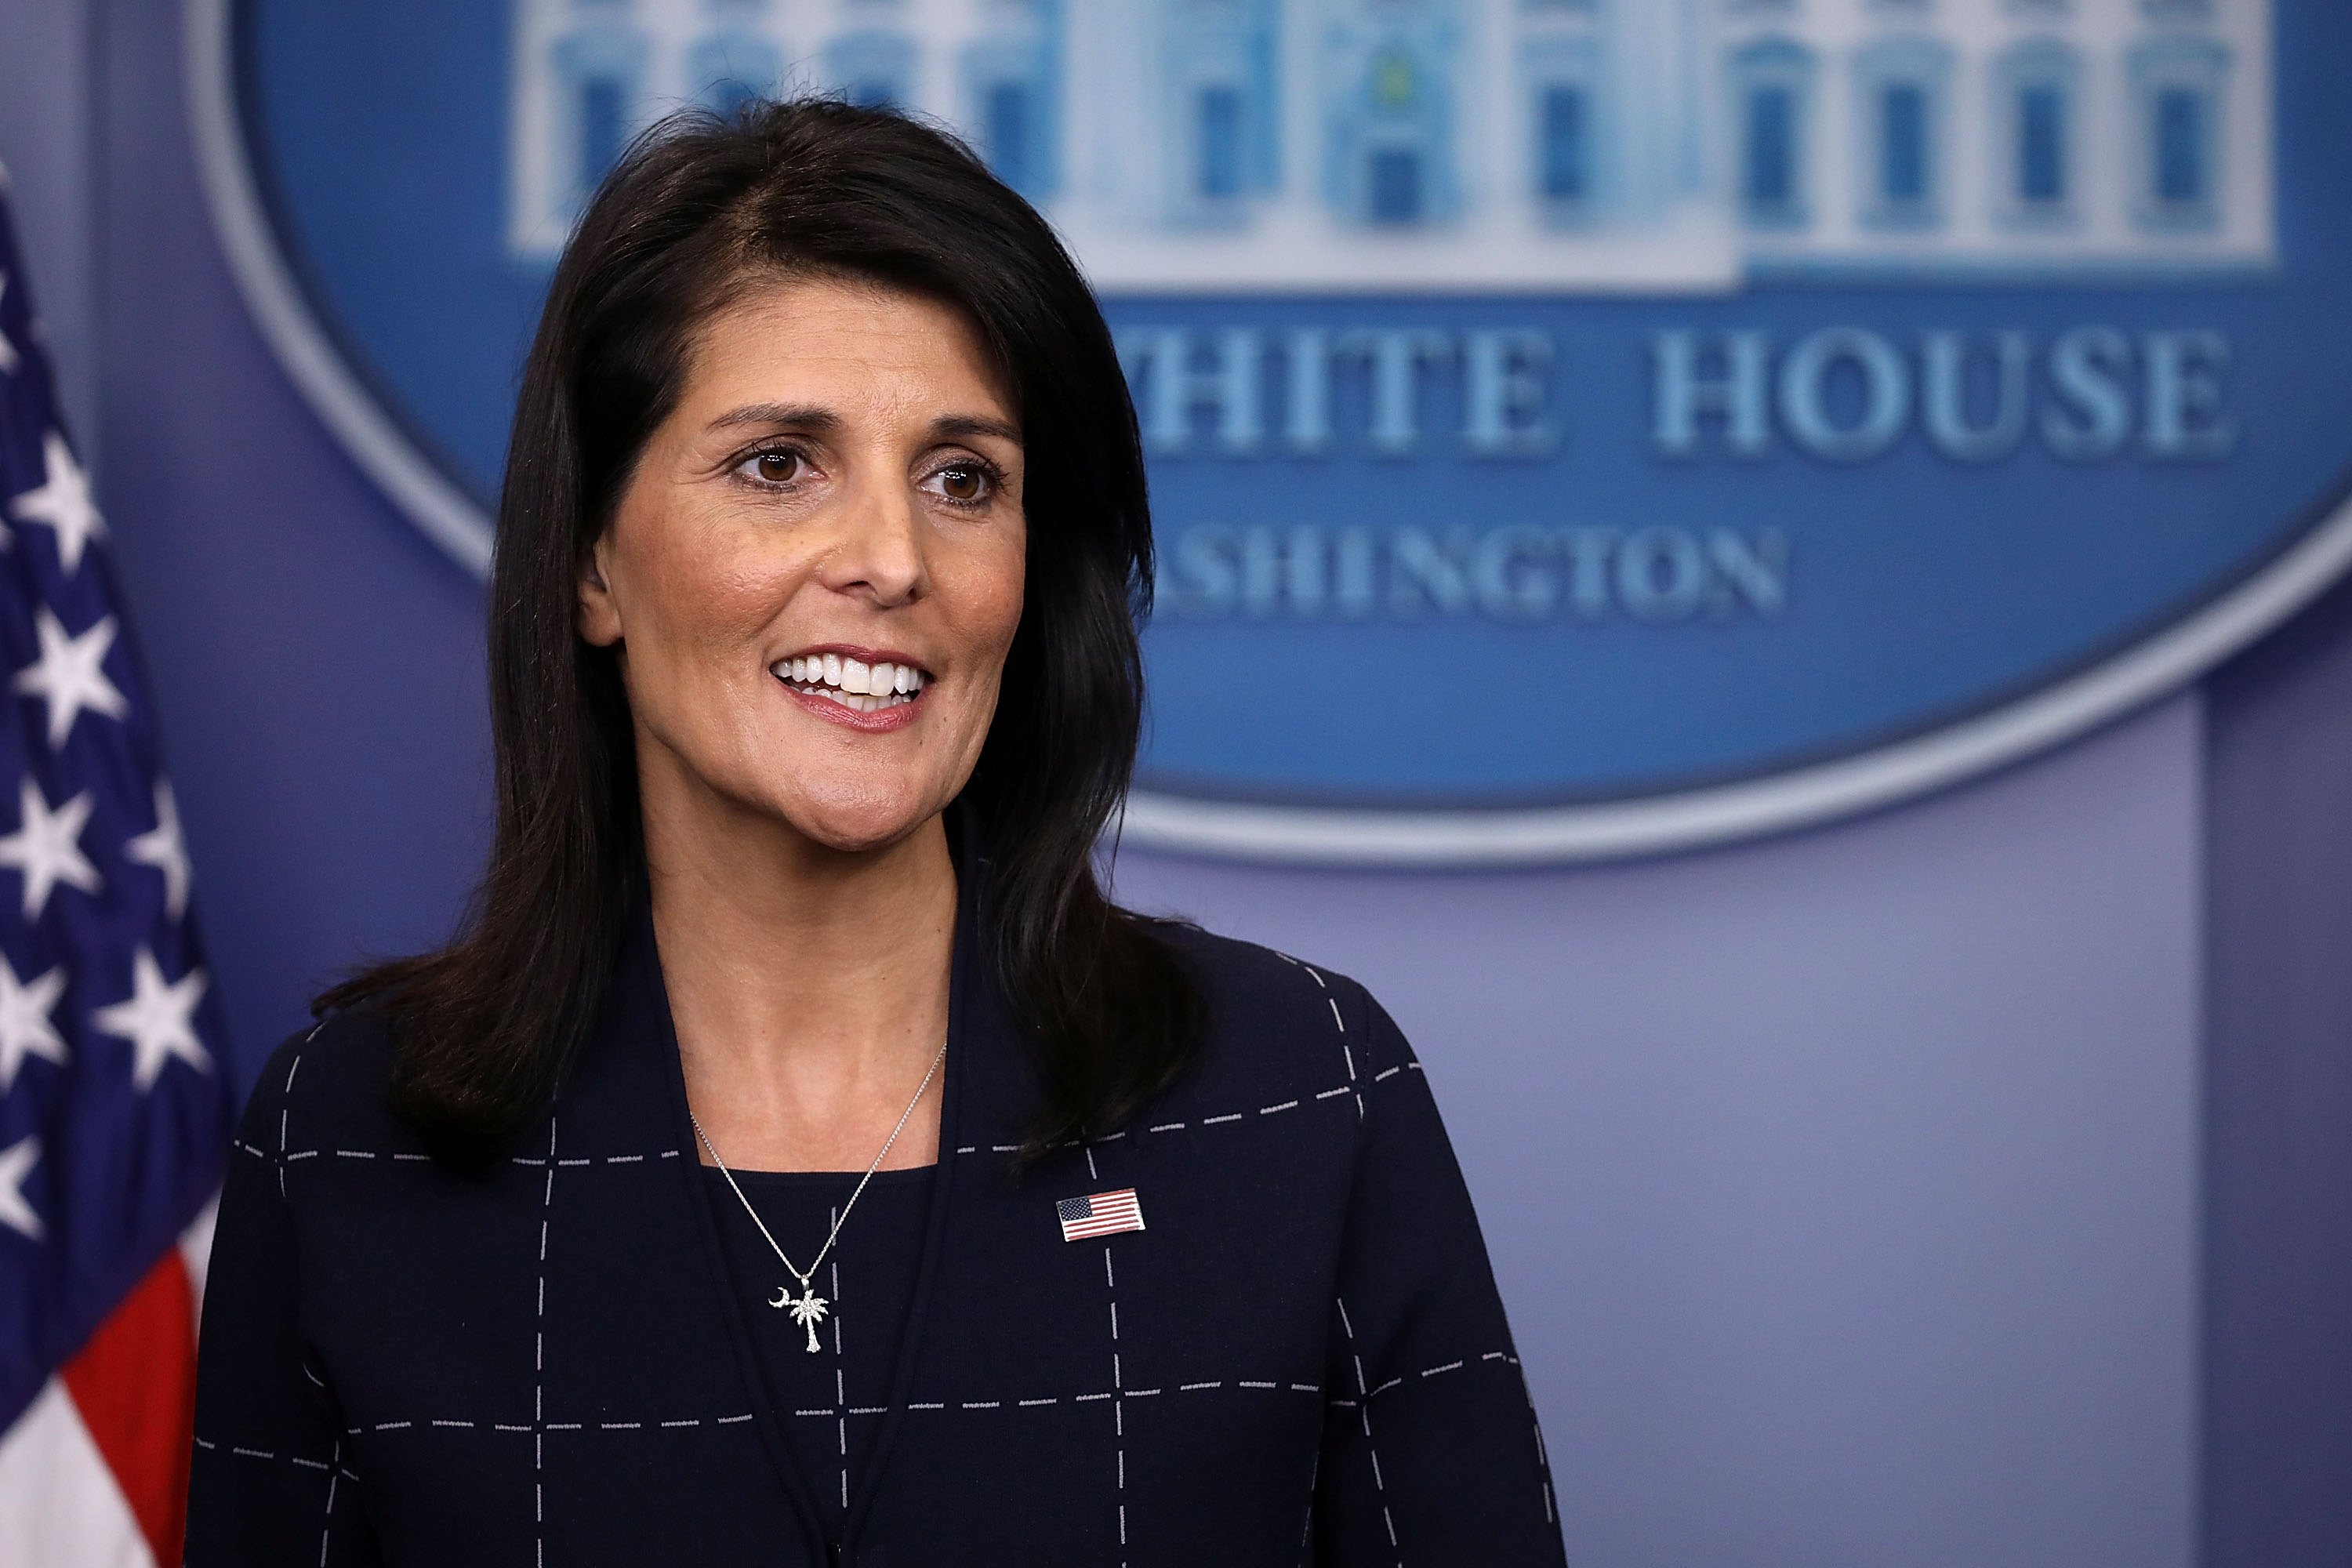 U.S. Ambassador to the United Nations Nikki Haley talks with reporters during the daily press briefing at the White House on April 24, 2017. (Chip Somodevilla/Getty Images)